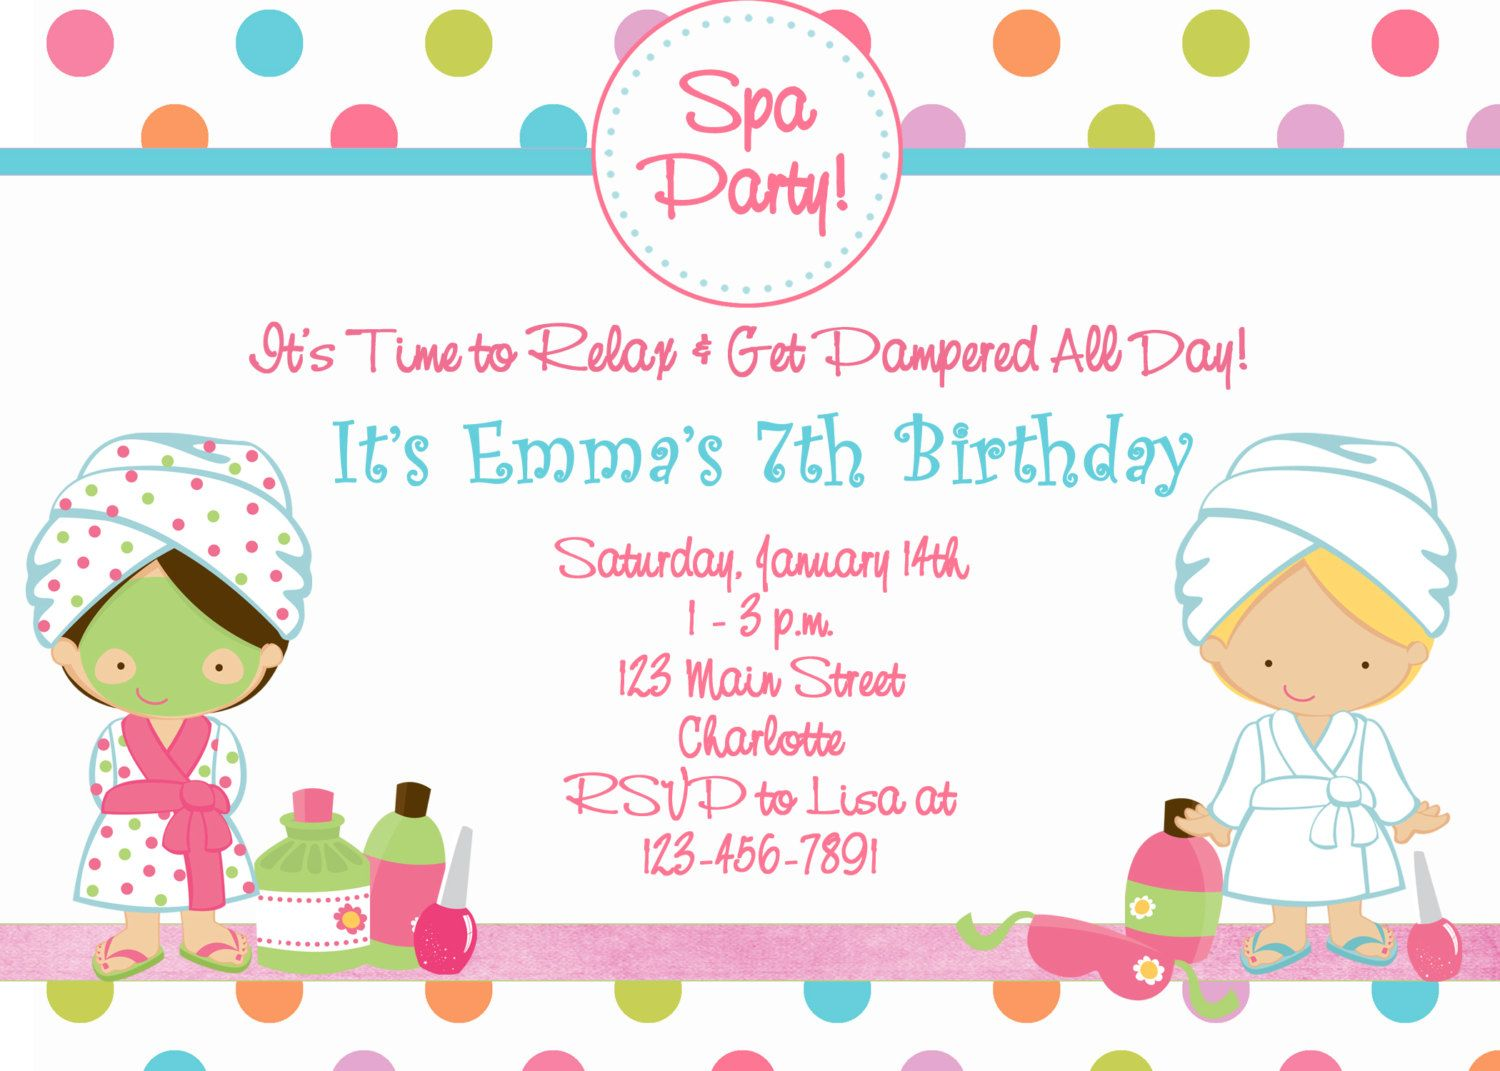 printable spa birthday party invitations spa at home printable spa birthday party invitations